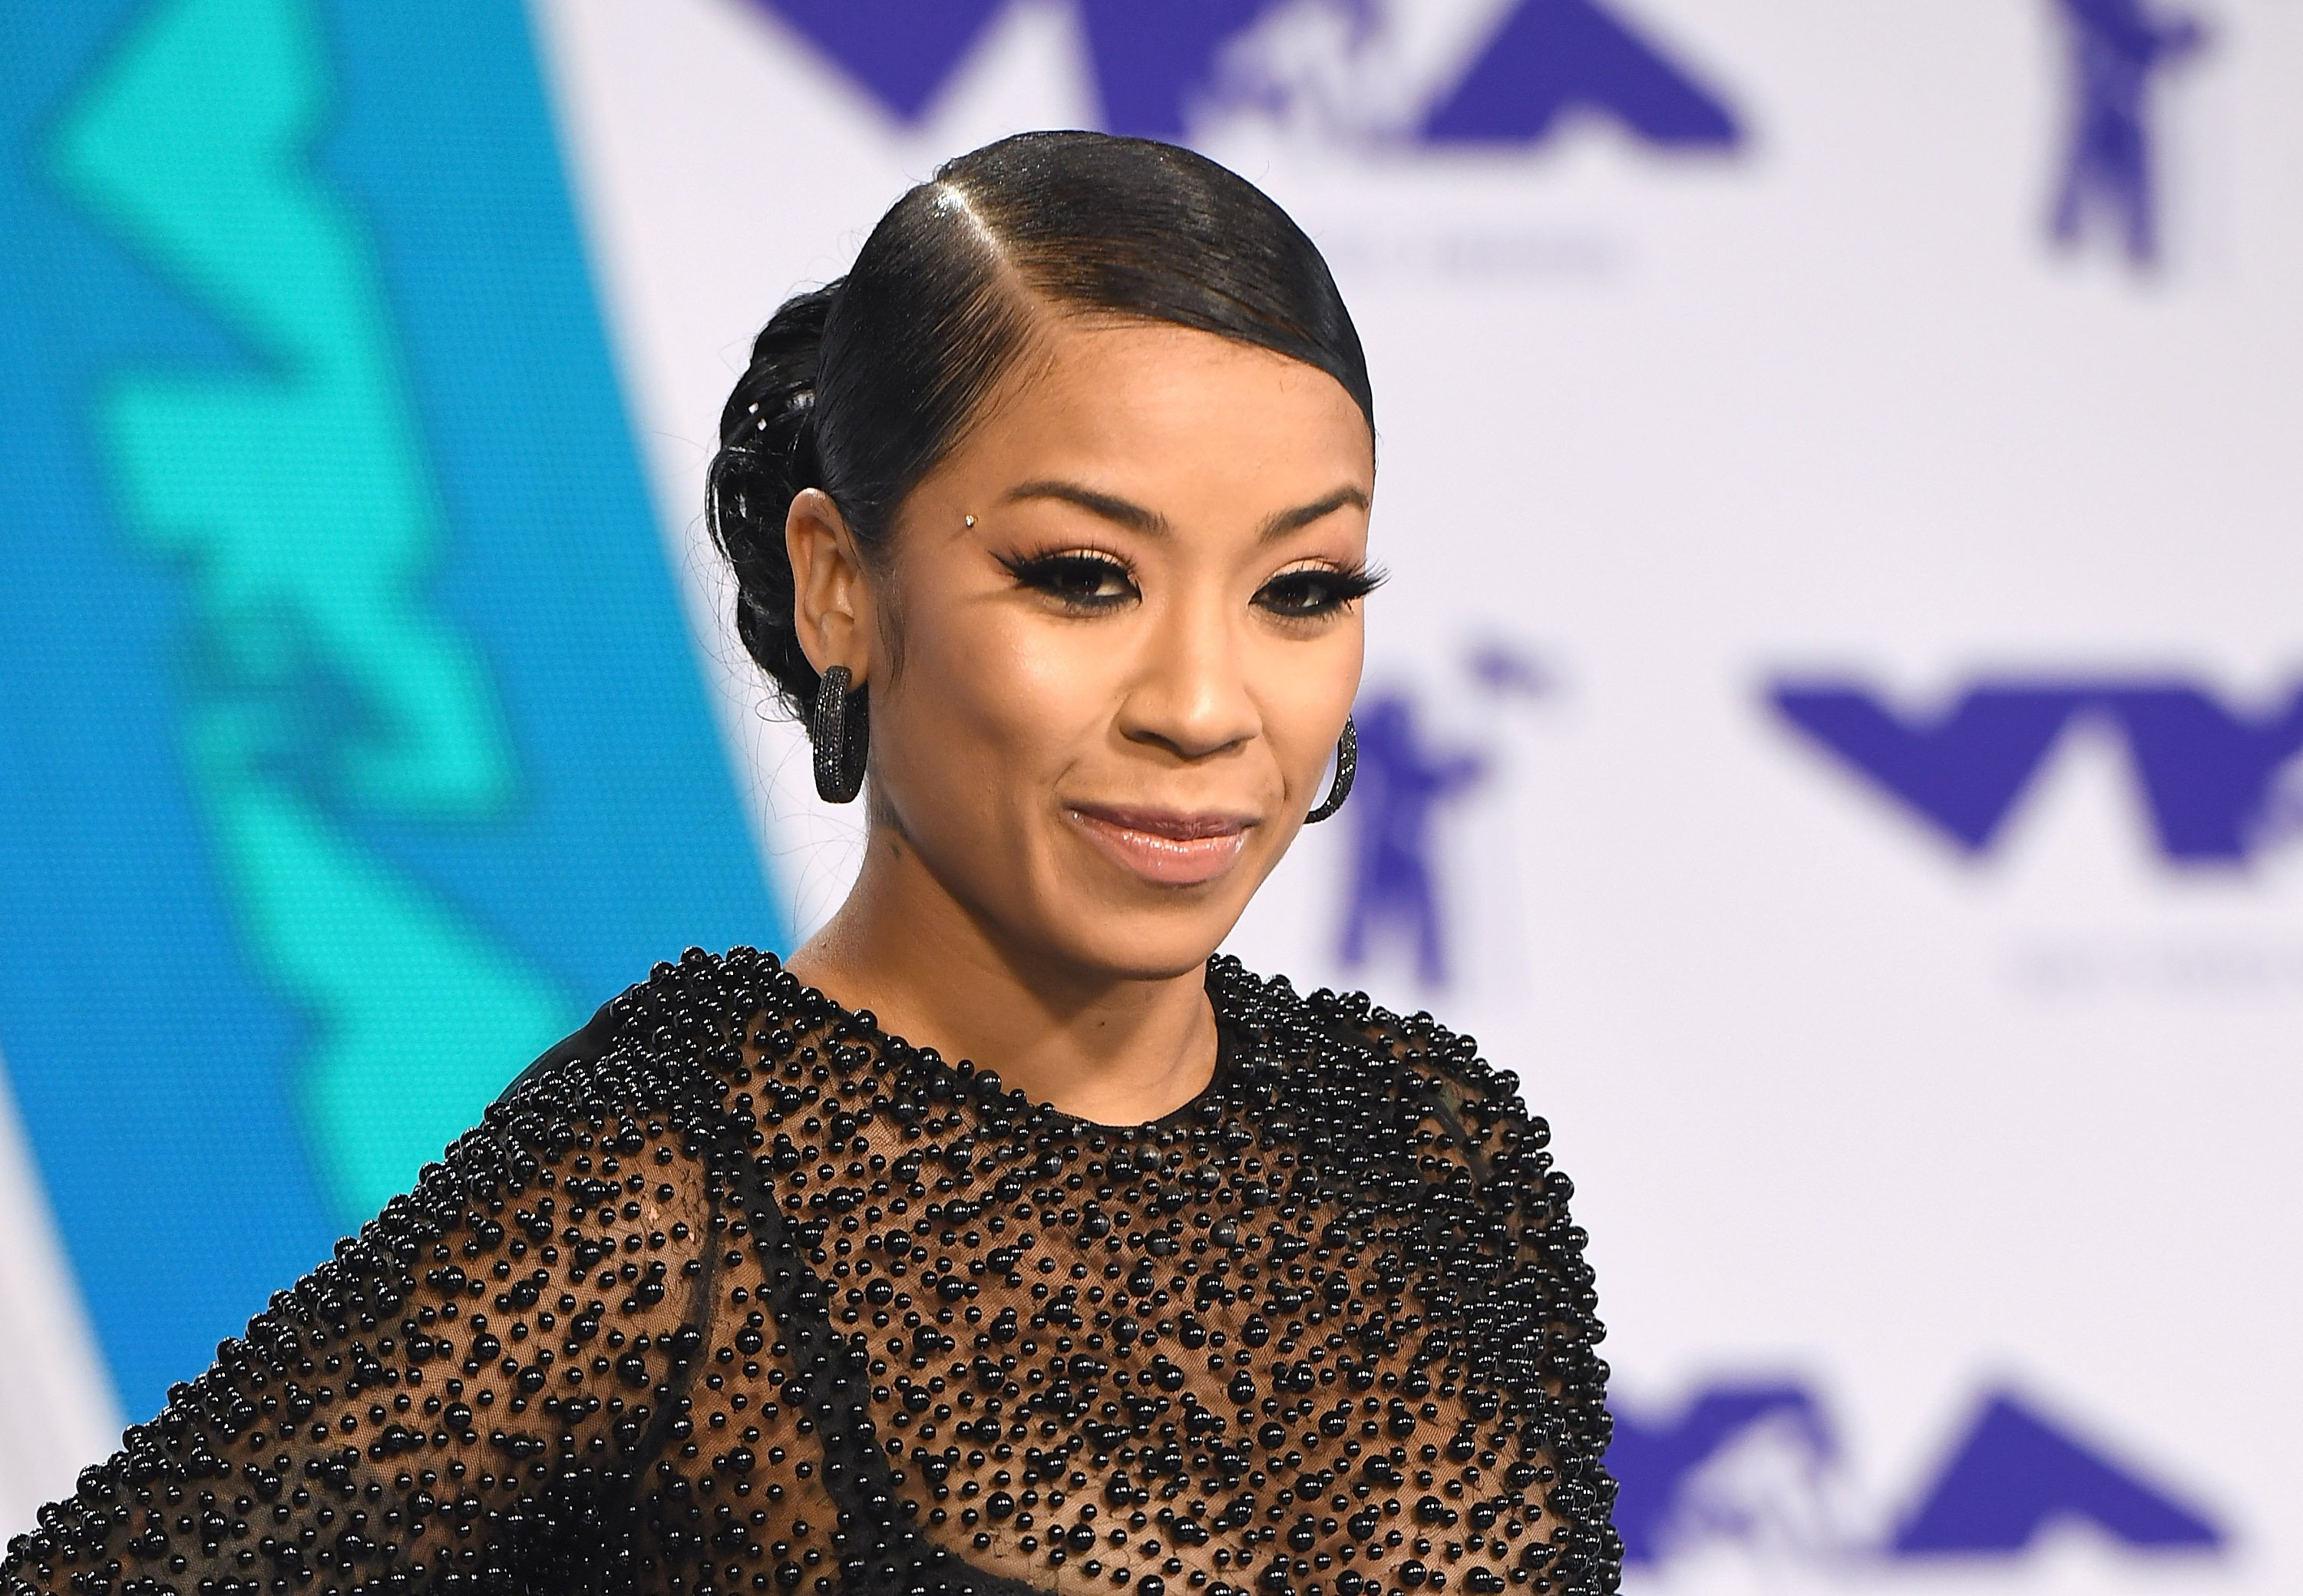 Keyshia Cole at the 2017 MTV Video Music Awards on Aug. 27, 2017 in California | Photo: Getty Images